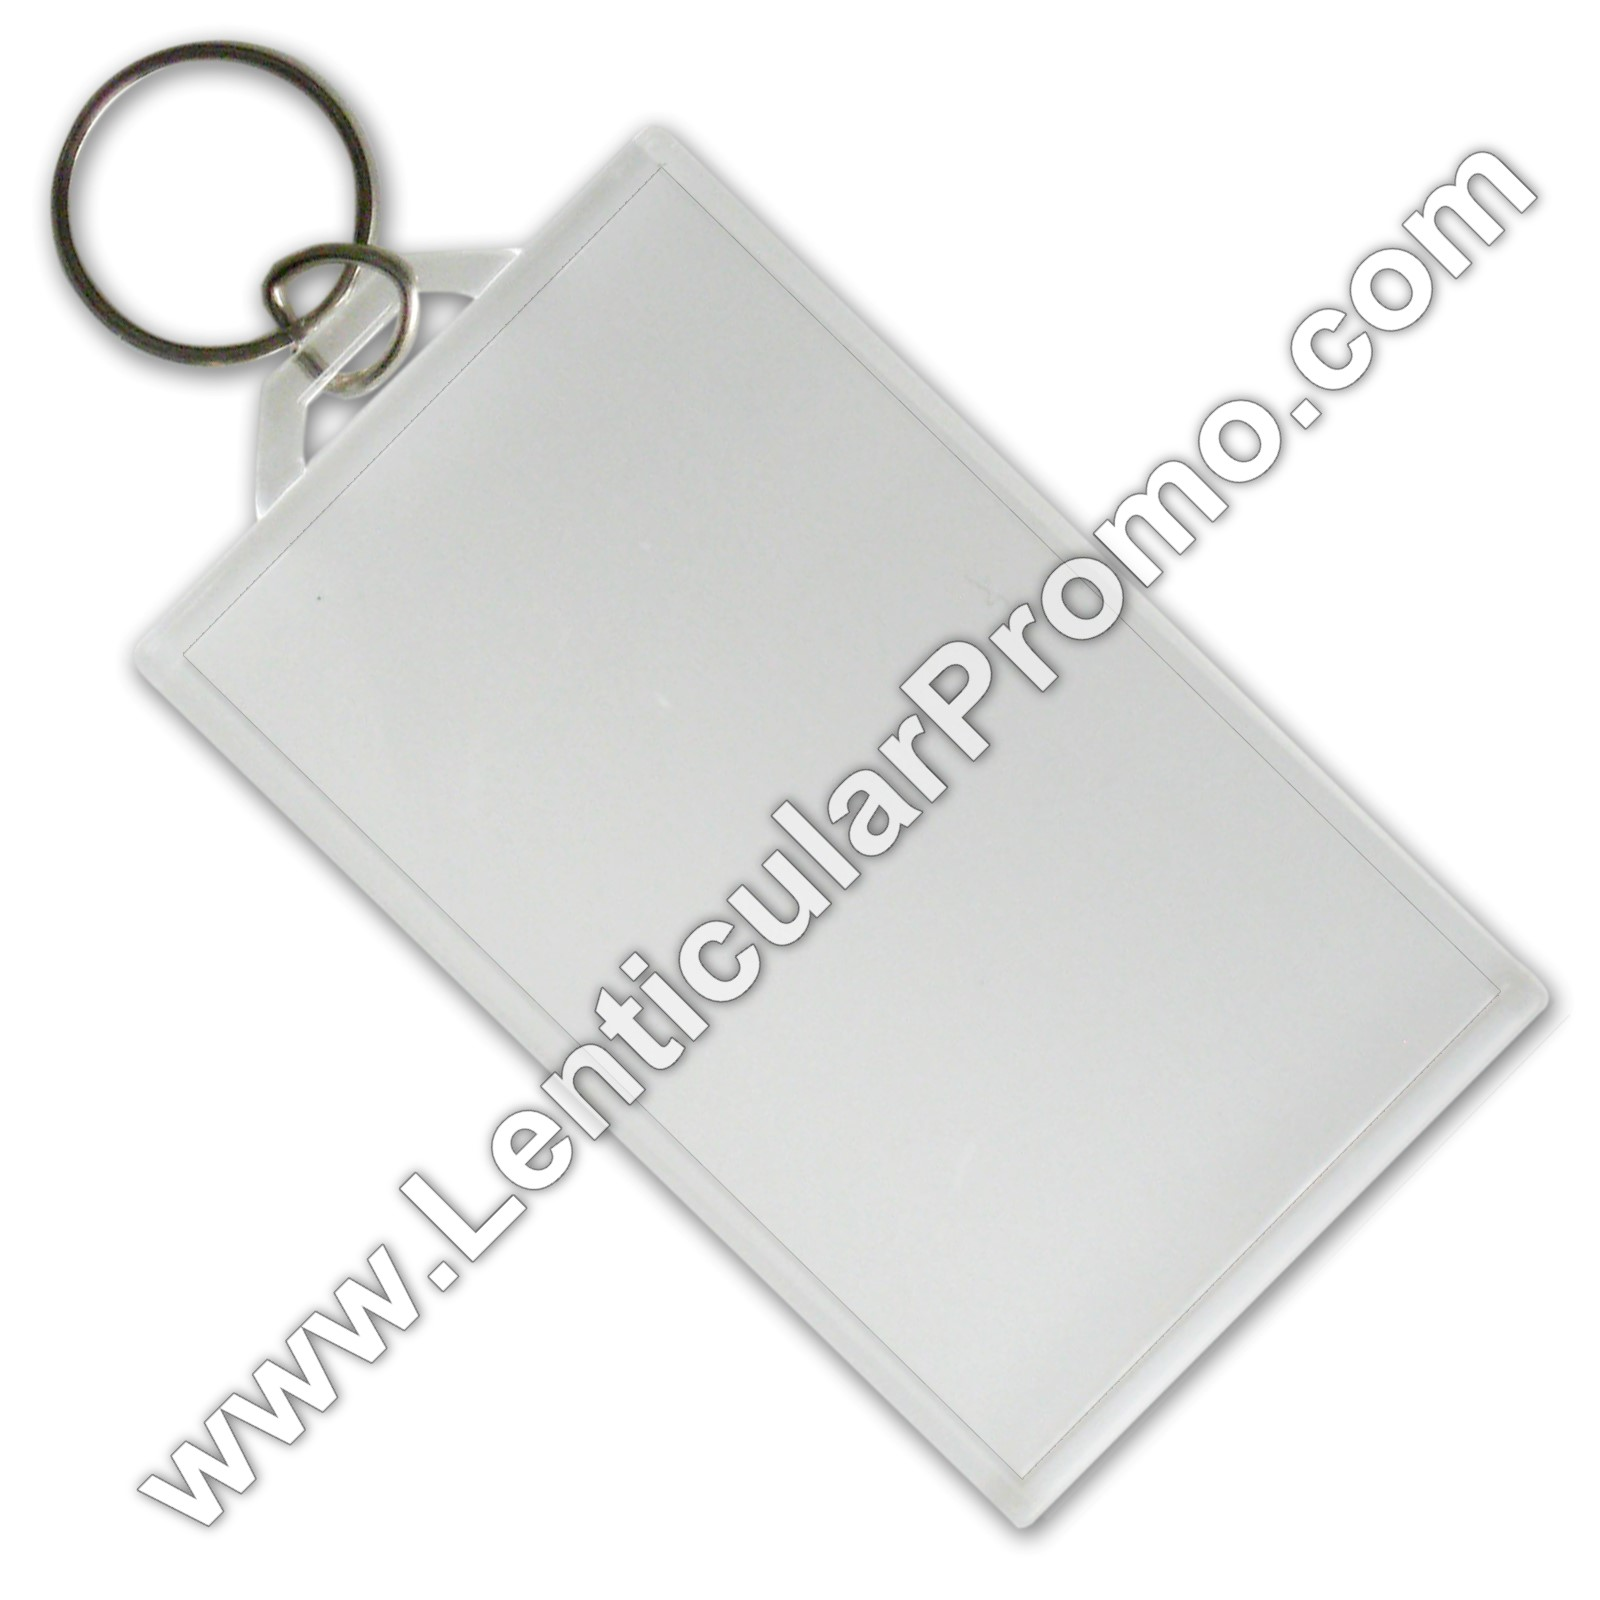 acrylic key chain snap in business card 2 x 3 5 inches clear